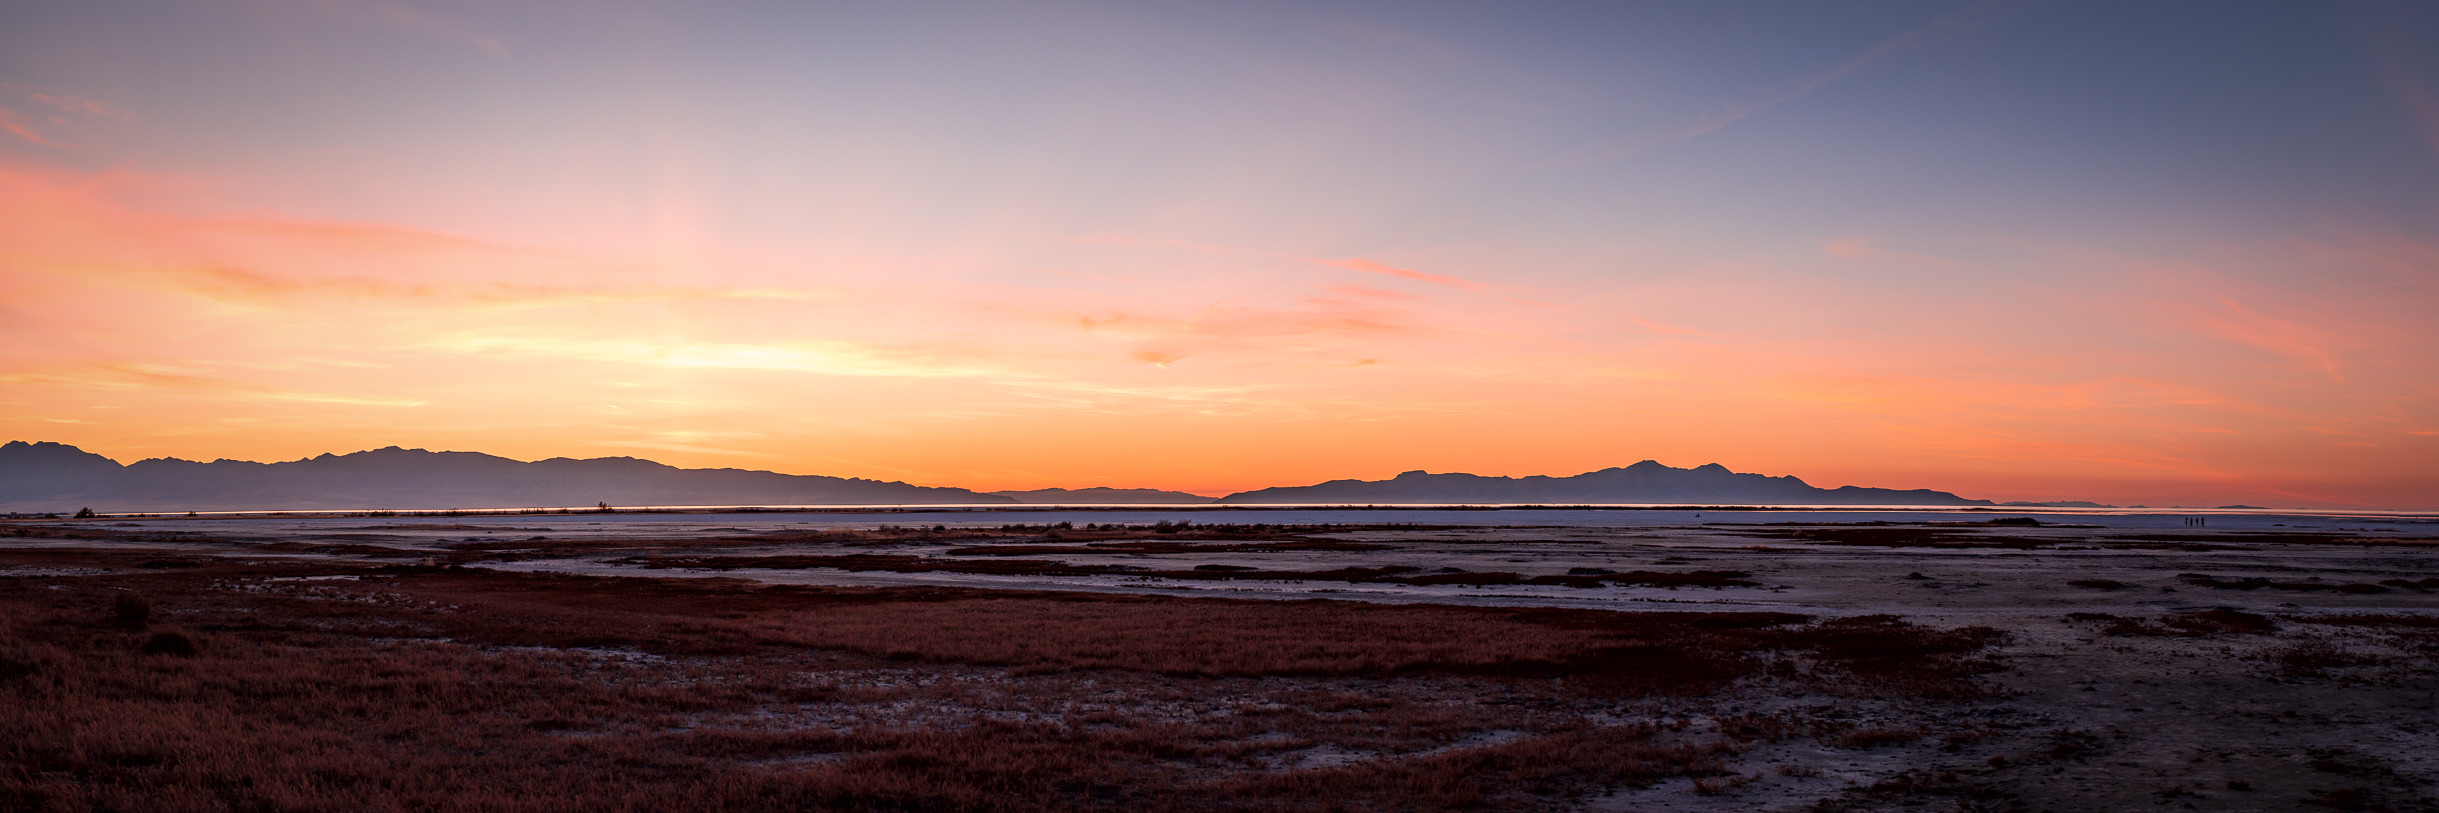 The sun sets on the southern shore of Utah's Great Salt Lake.